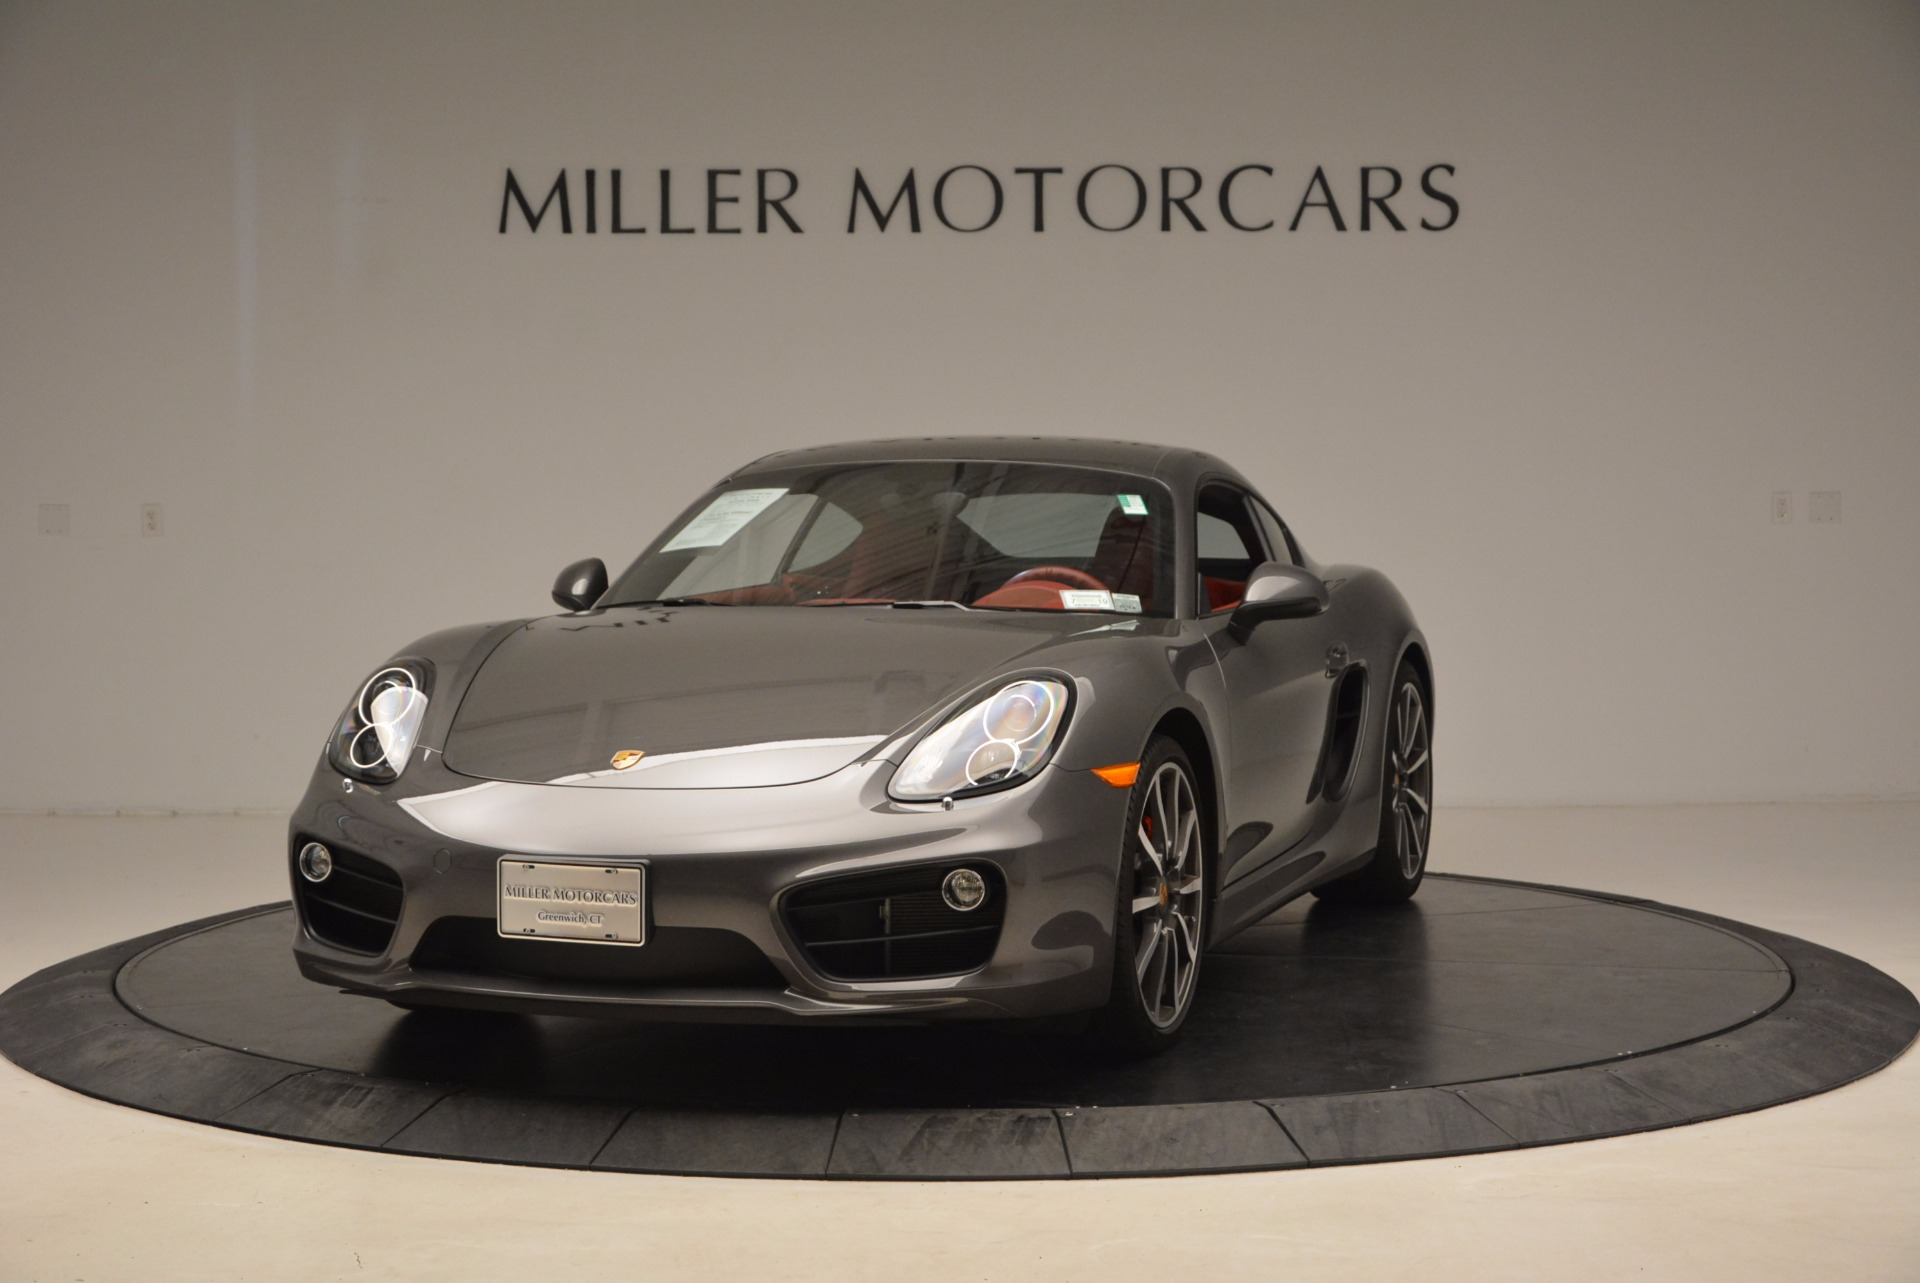 Used 2014 Porsche Cayman S S for sale Sold at Alfa Romeo of Greenwich in Greenwich CT 06830 1